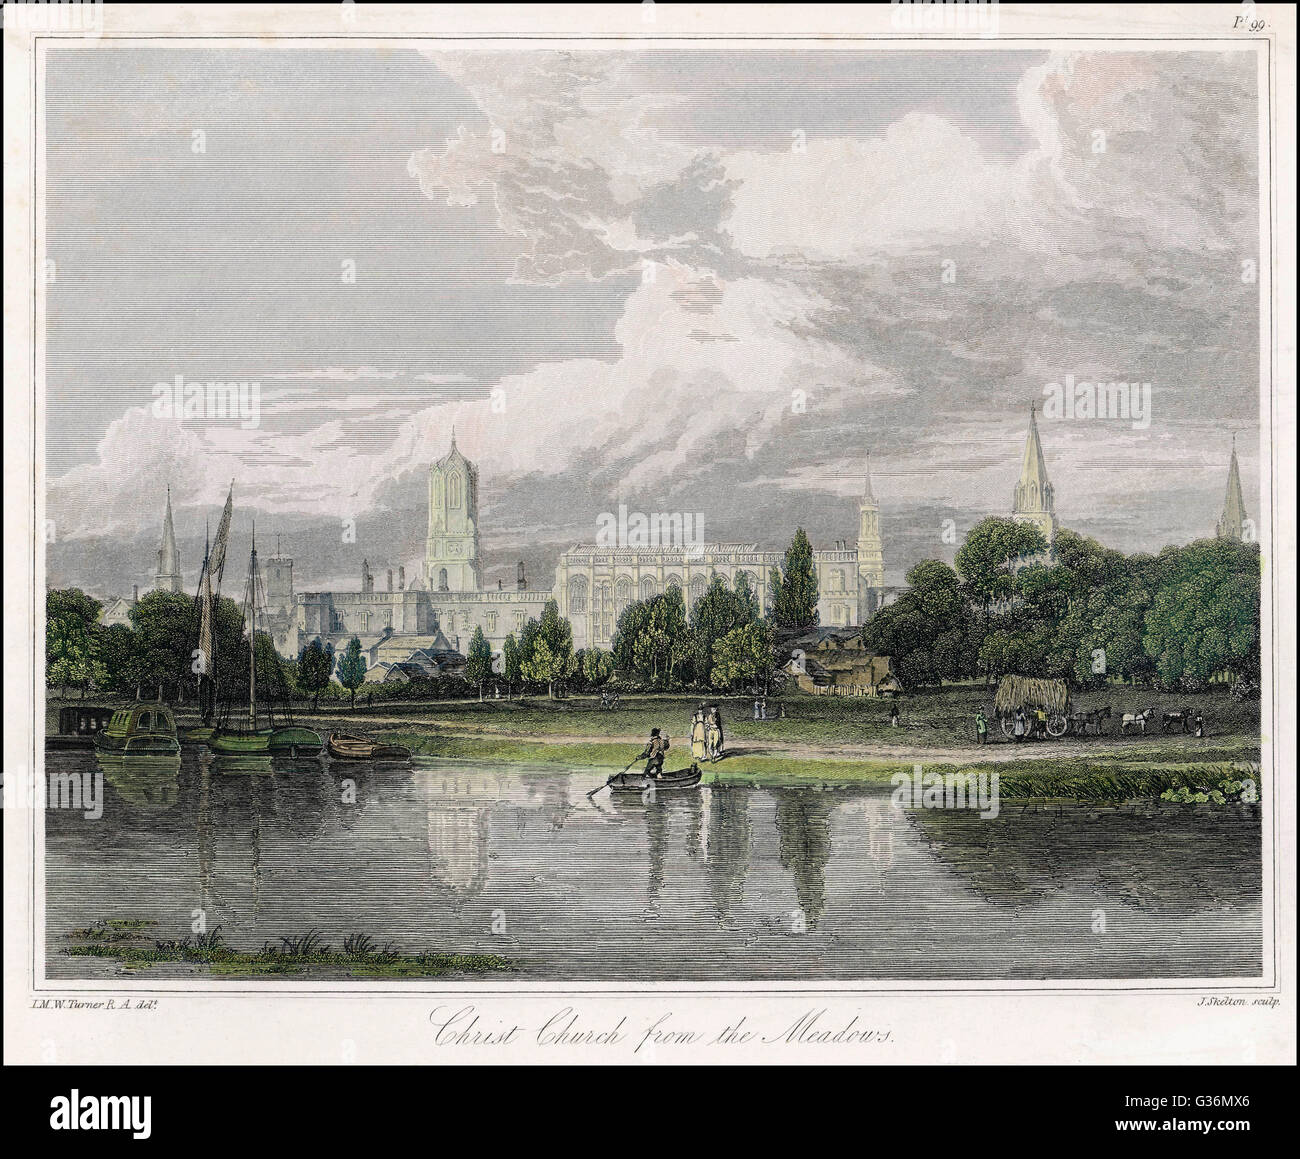 Oxford. Christ Church College seen across Christ Church Meadow, favoured site for a bypass, new science block, etc - Stock Image